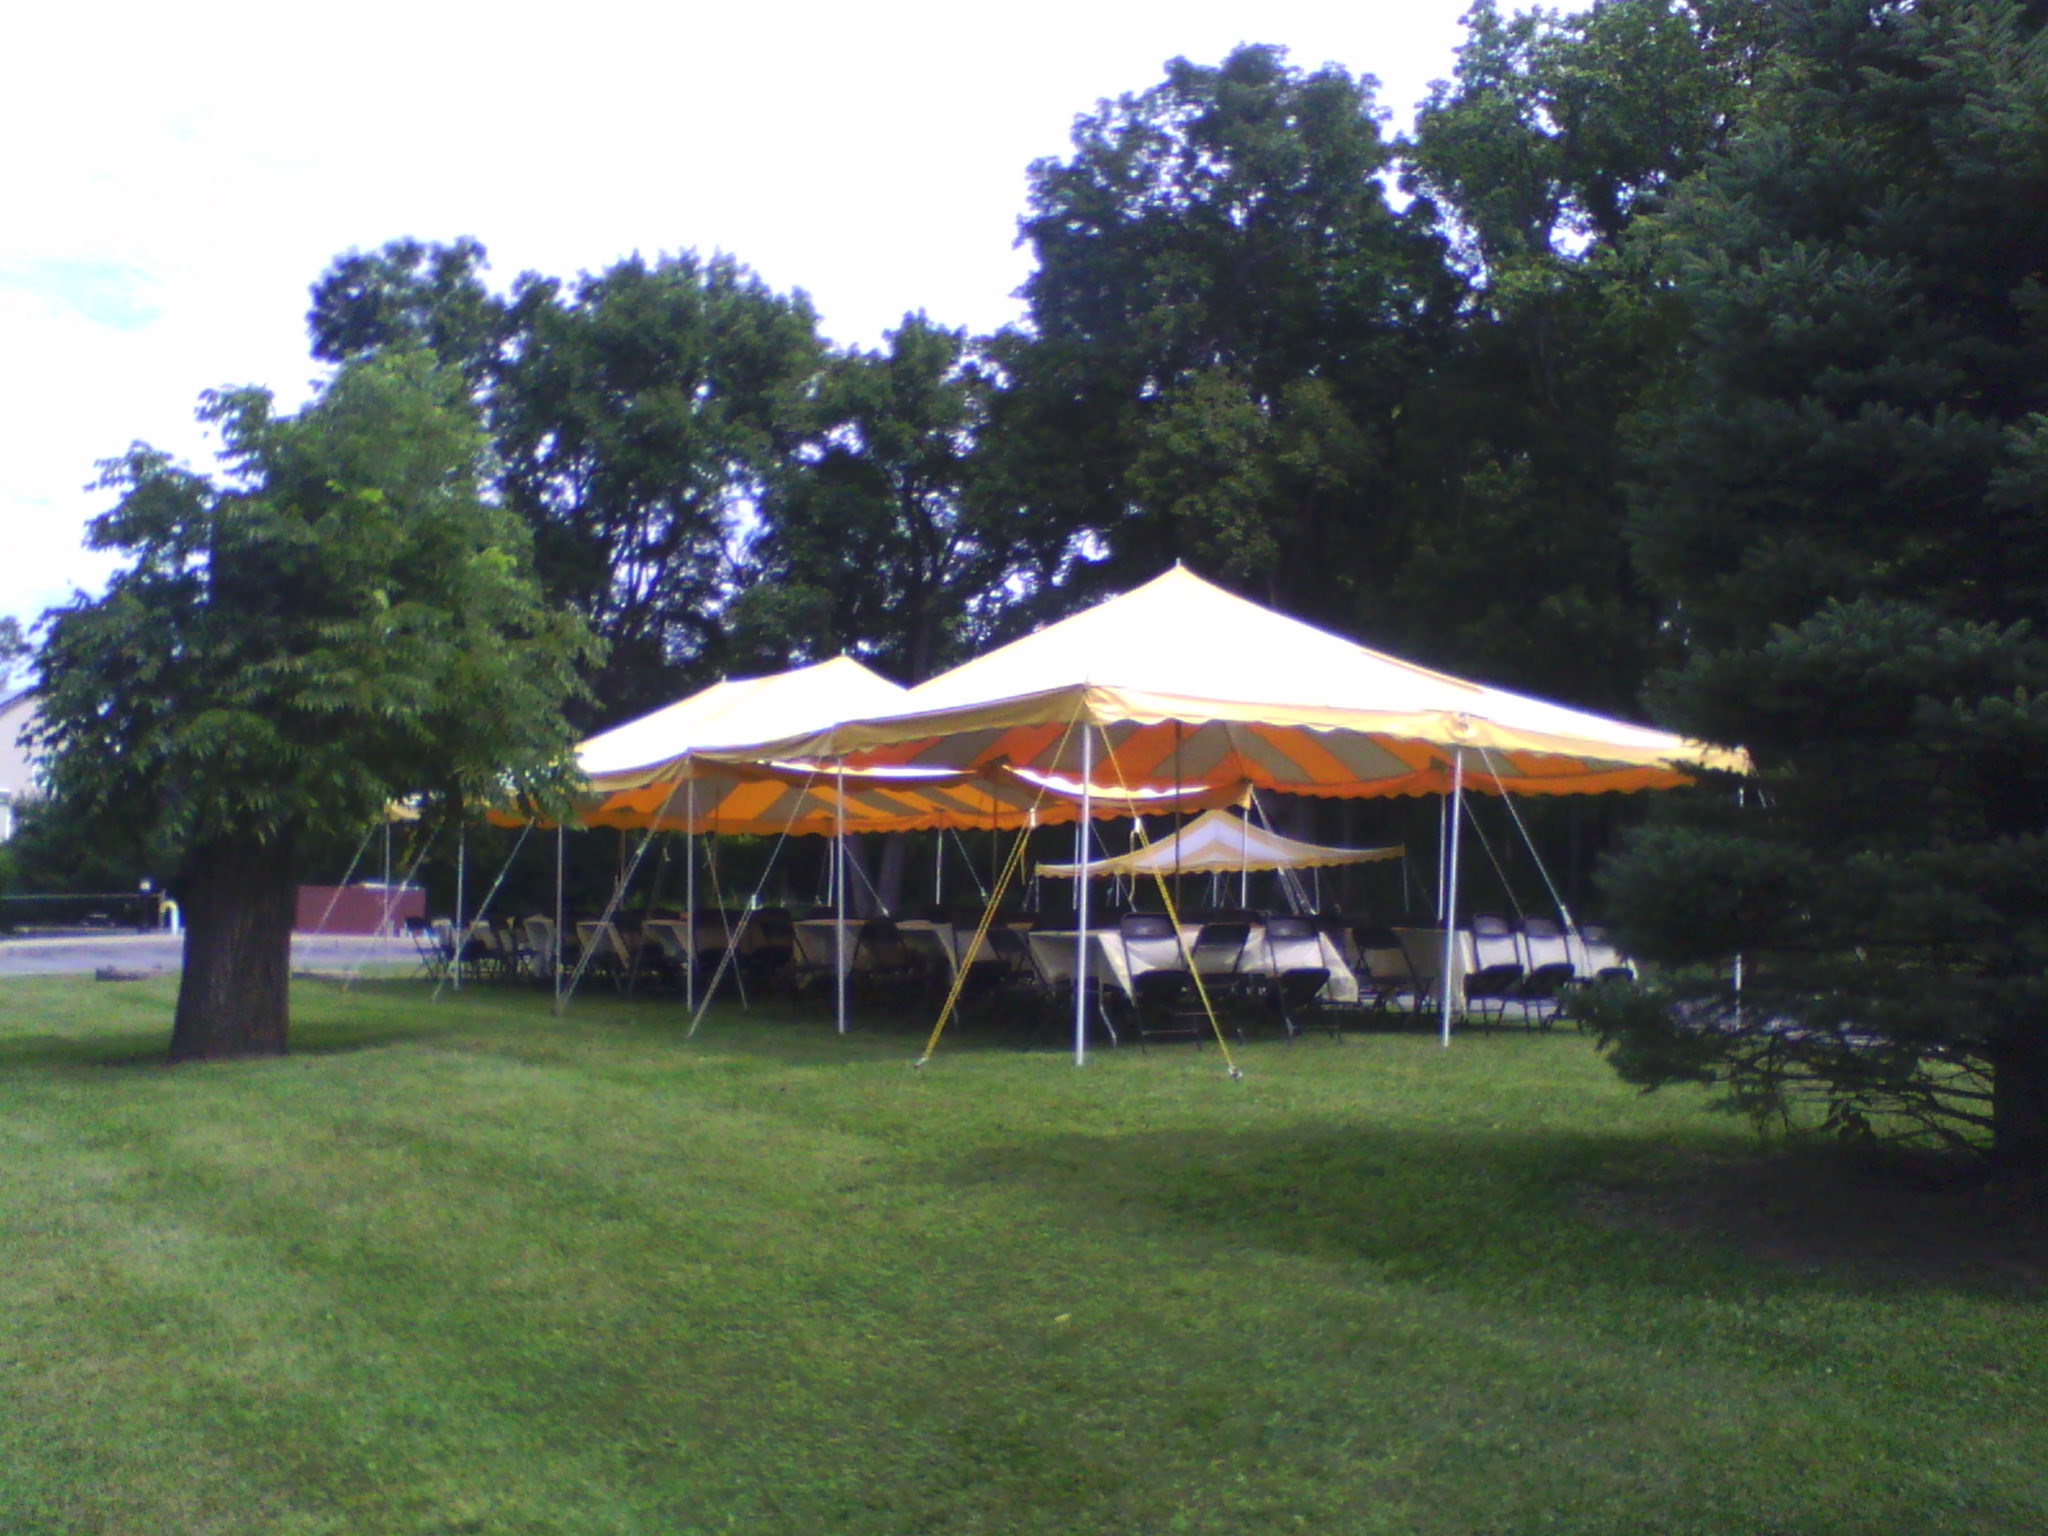 Party Tents Tables Chairs Birthday Parties Communion Graduation Backyard